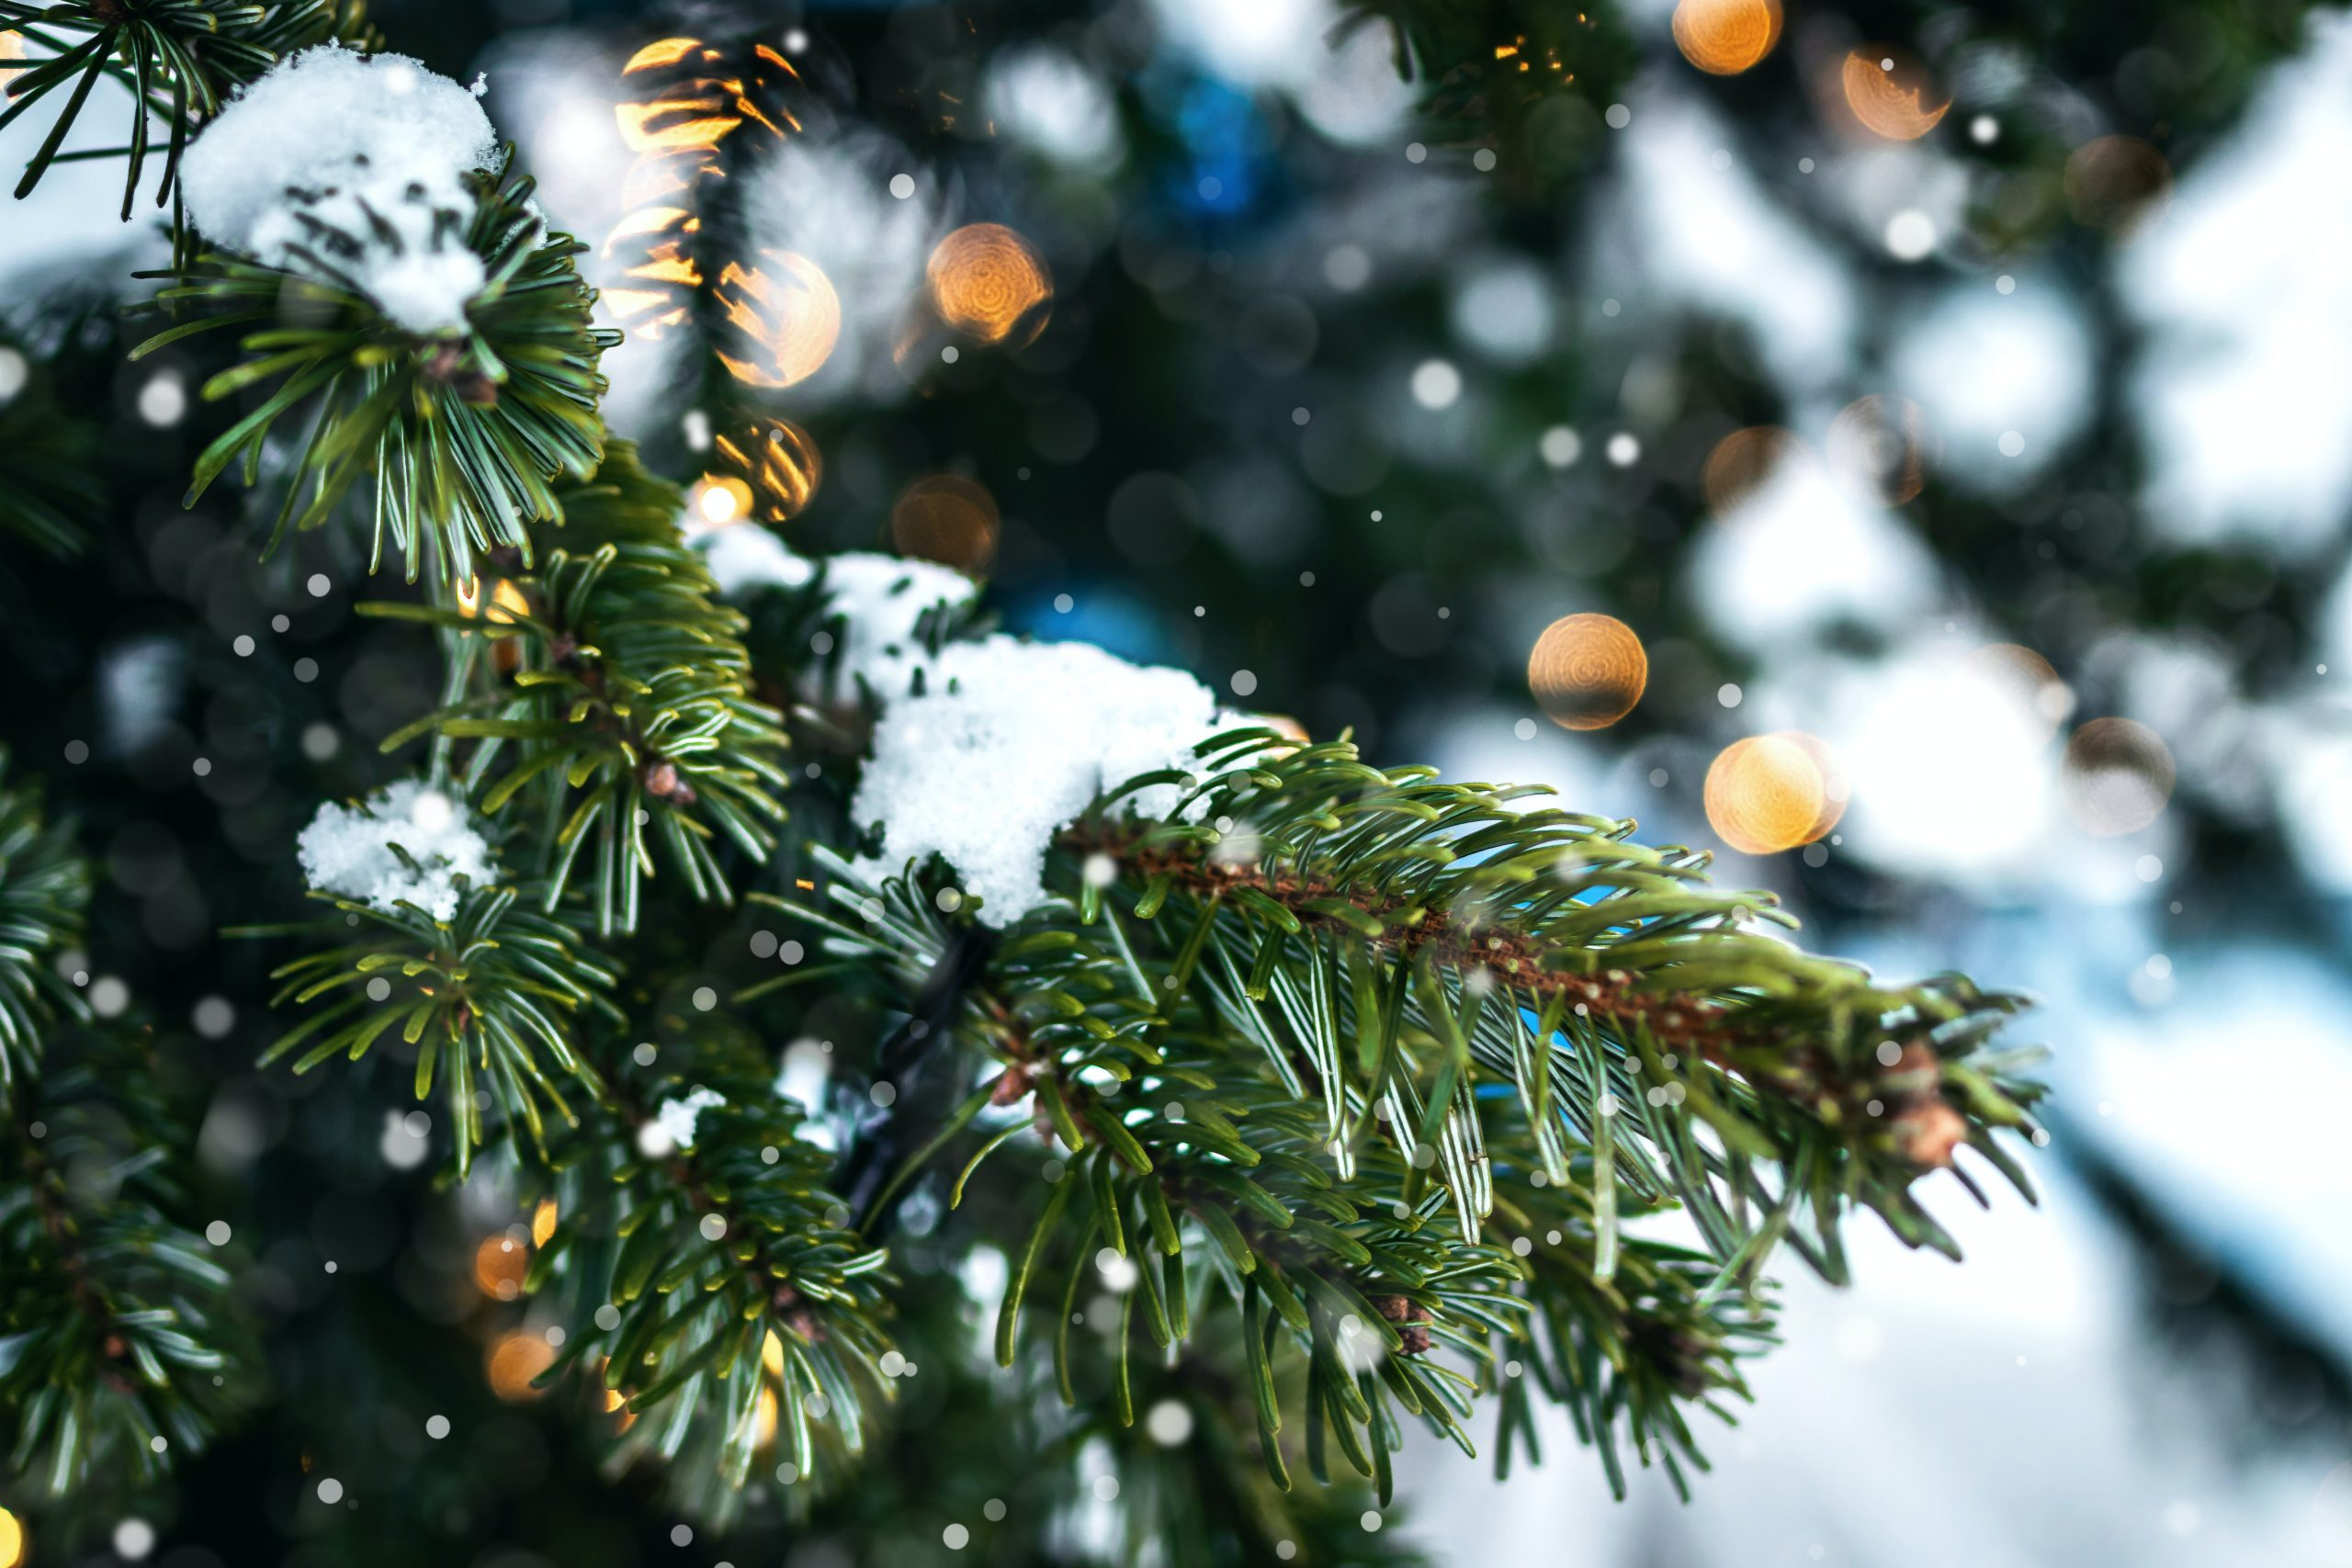 Gratitude in the Midst of the Holiday Season